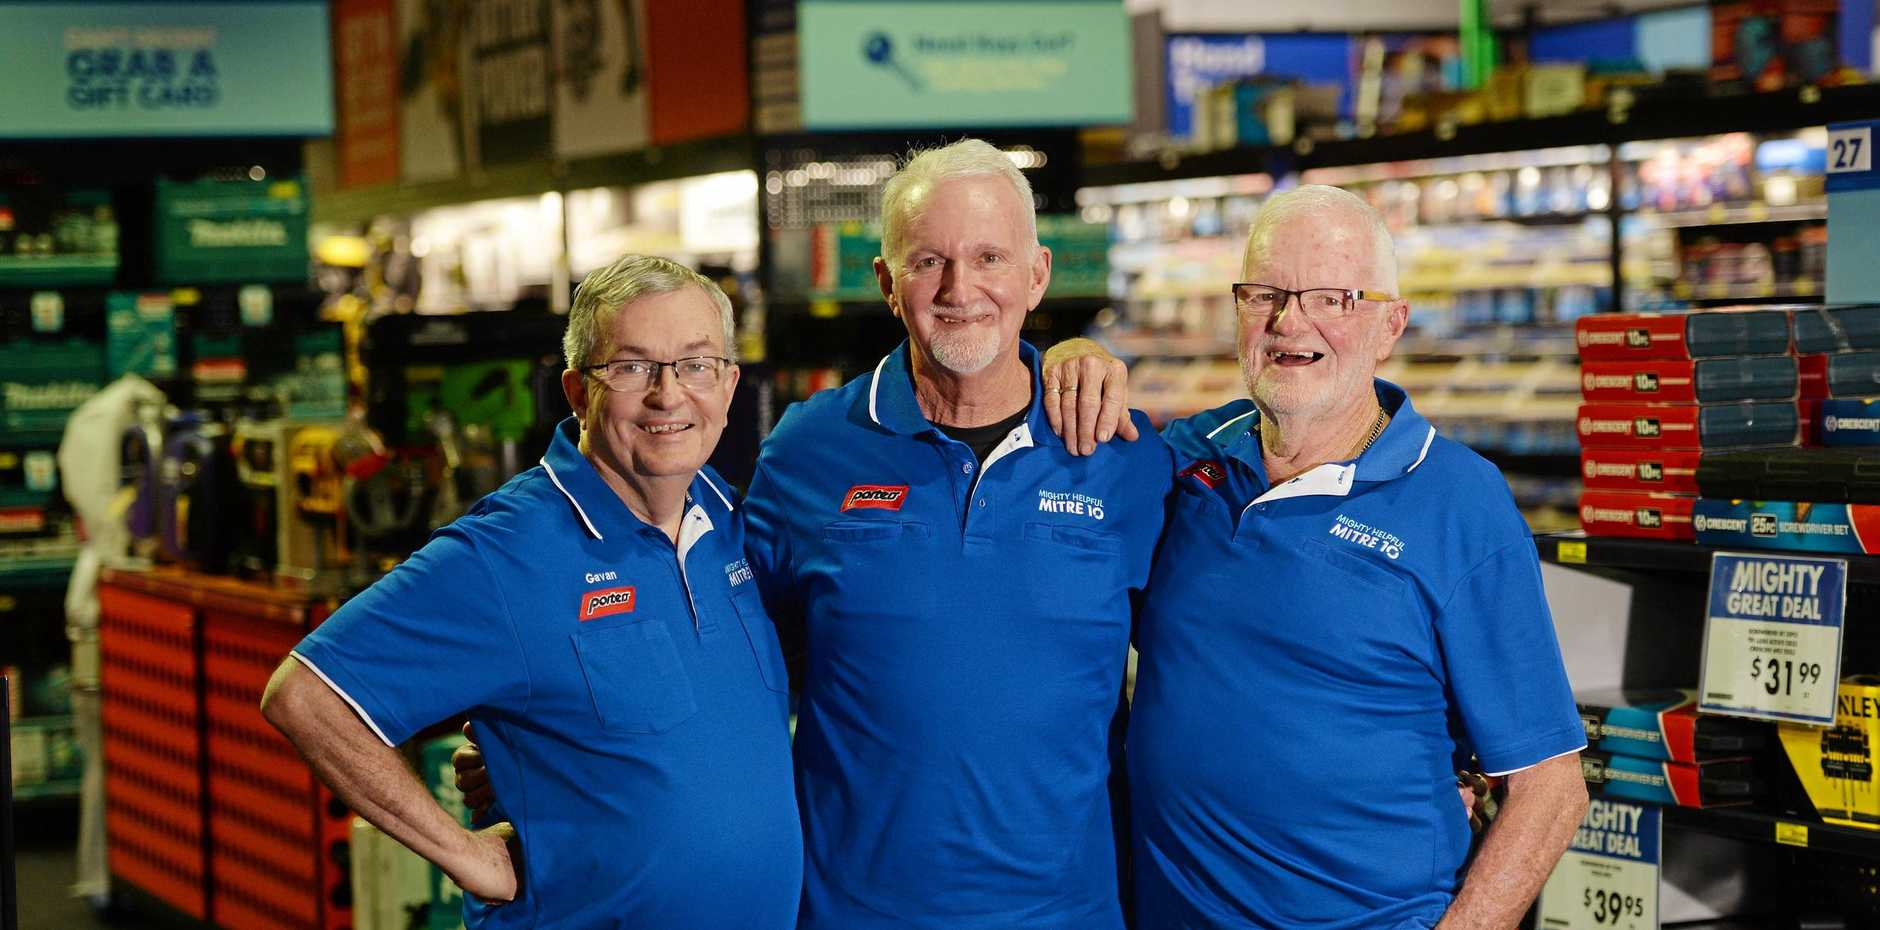 LONG ROAD: Porters Mitre 10 is celebrating 135 years. Charles Porter's great grandchildren Gavan Snr, Paul and Barry Porter are pictured in the Mackay store.